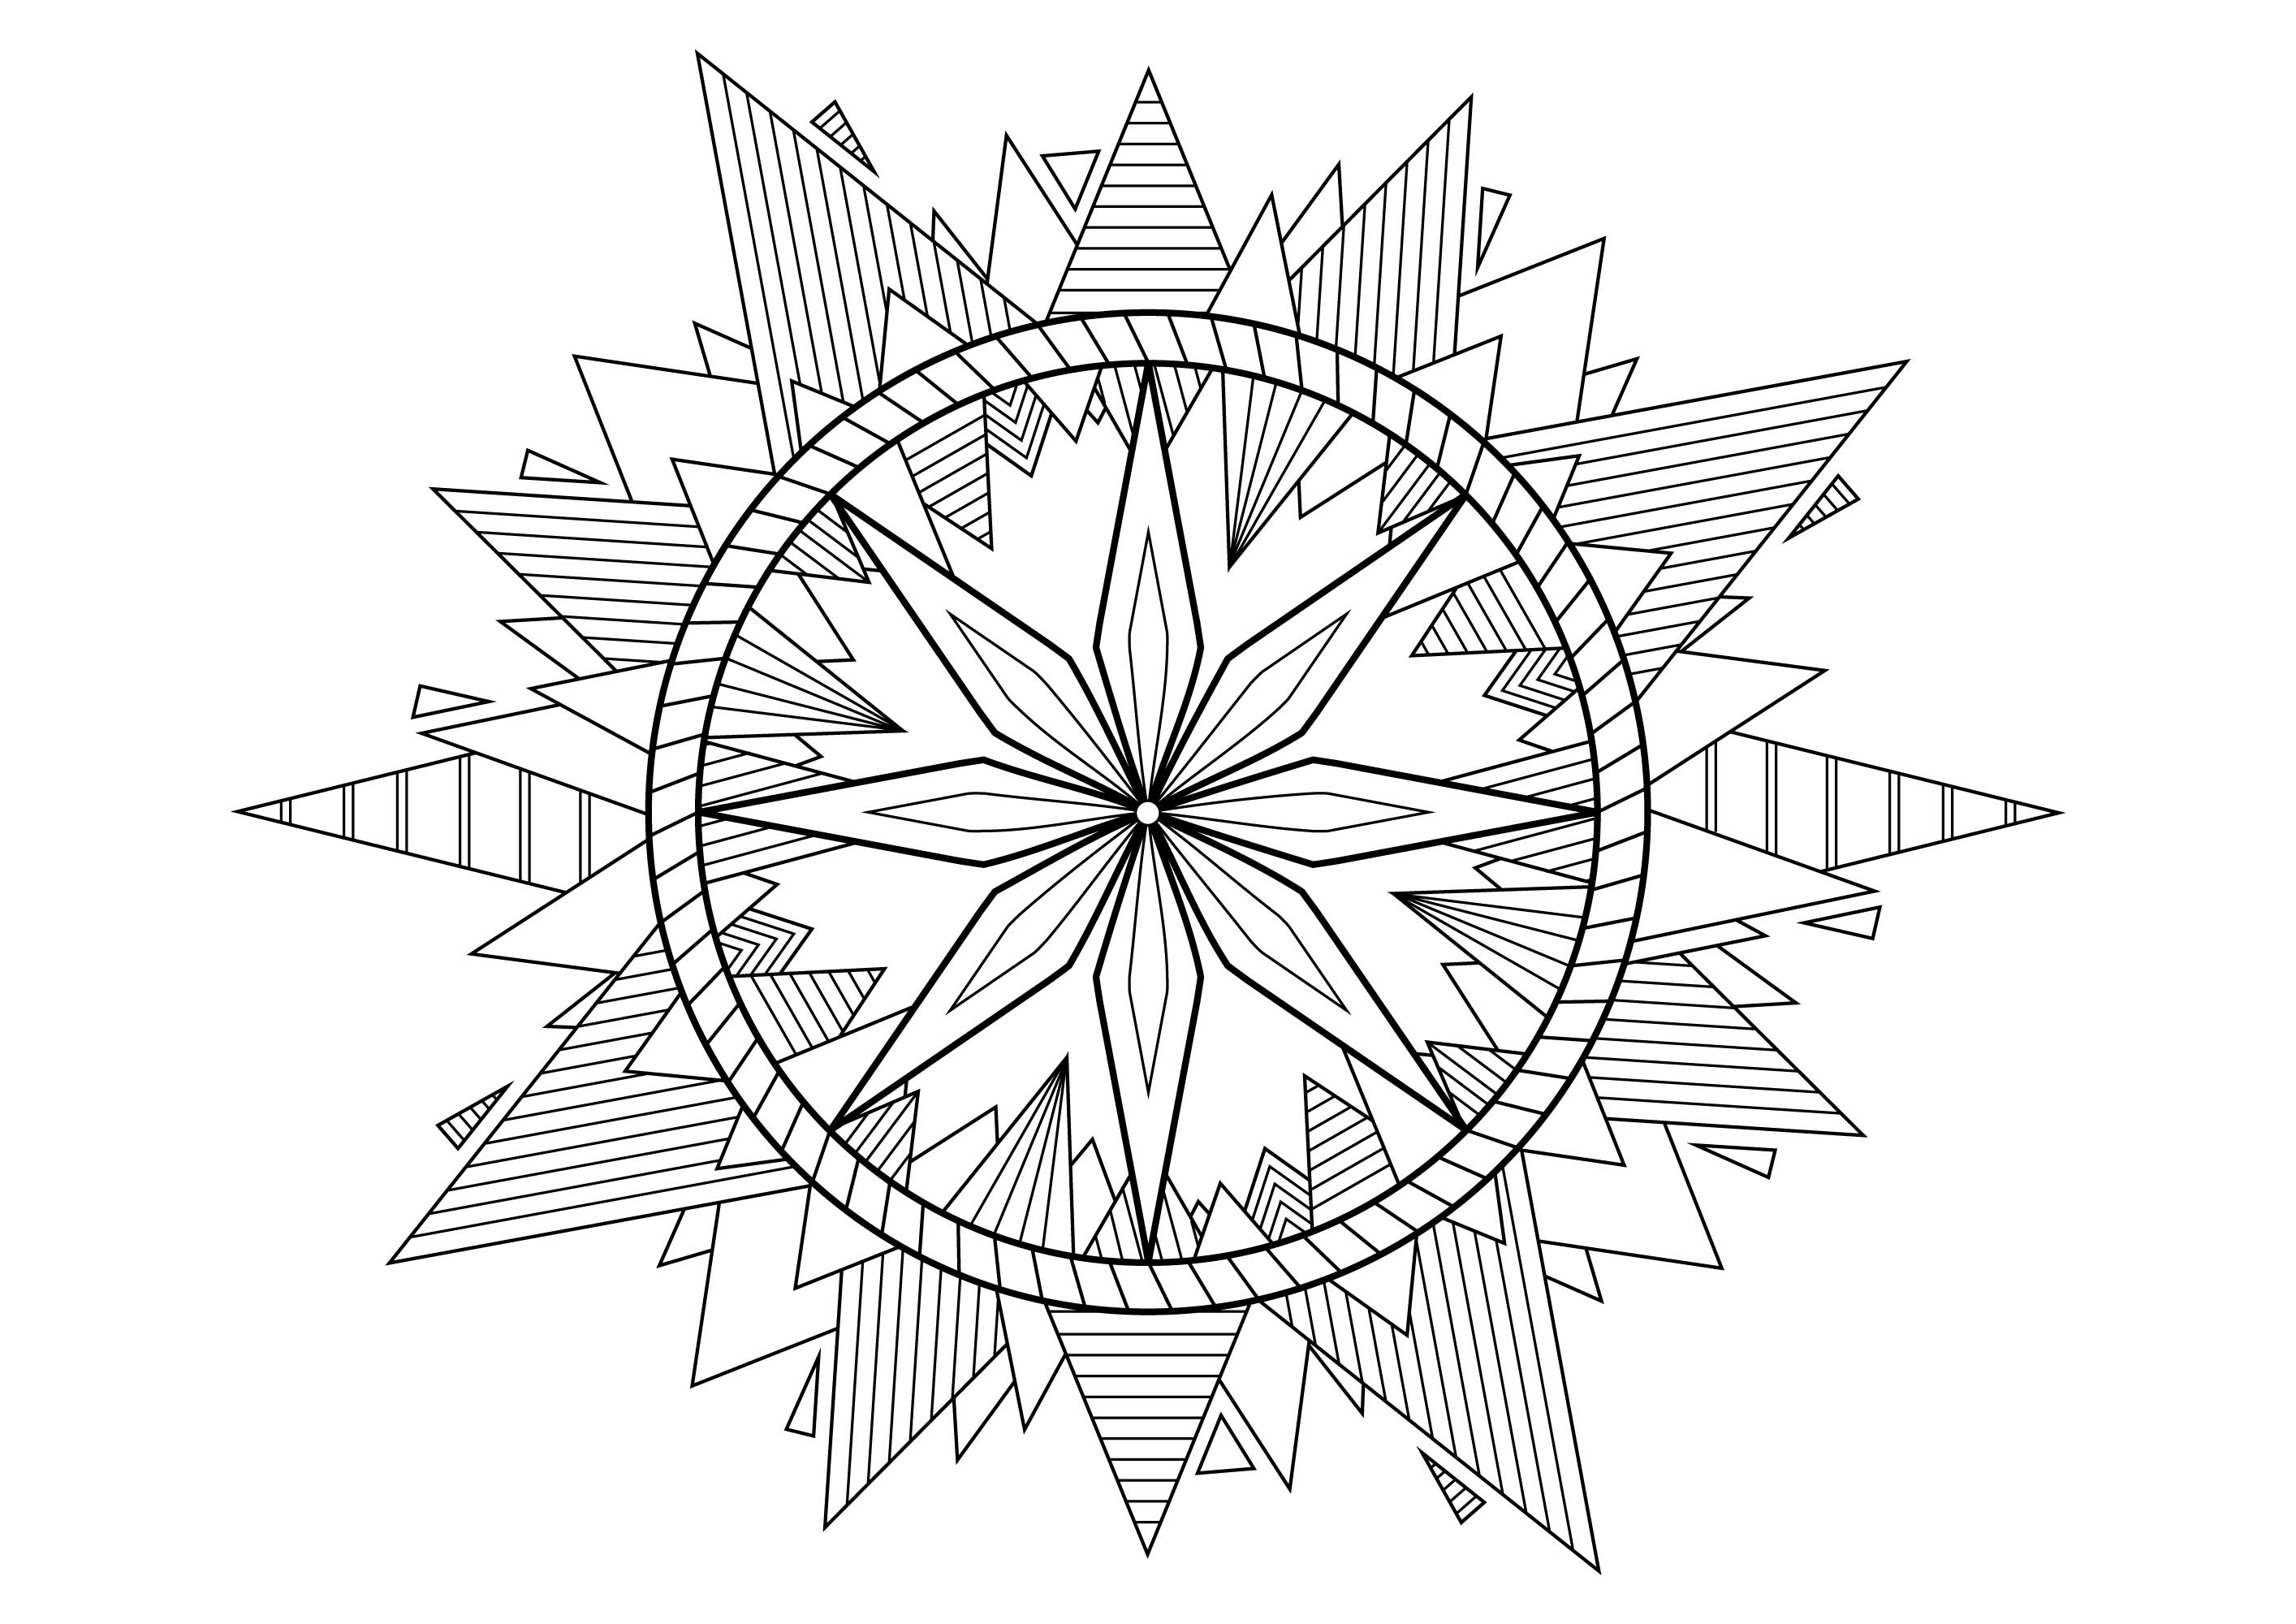 A beautiful Mandala with pyramids in ends full of nice patterns to color.